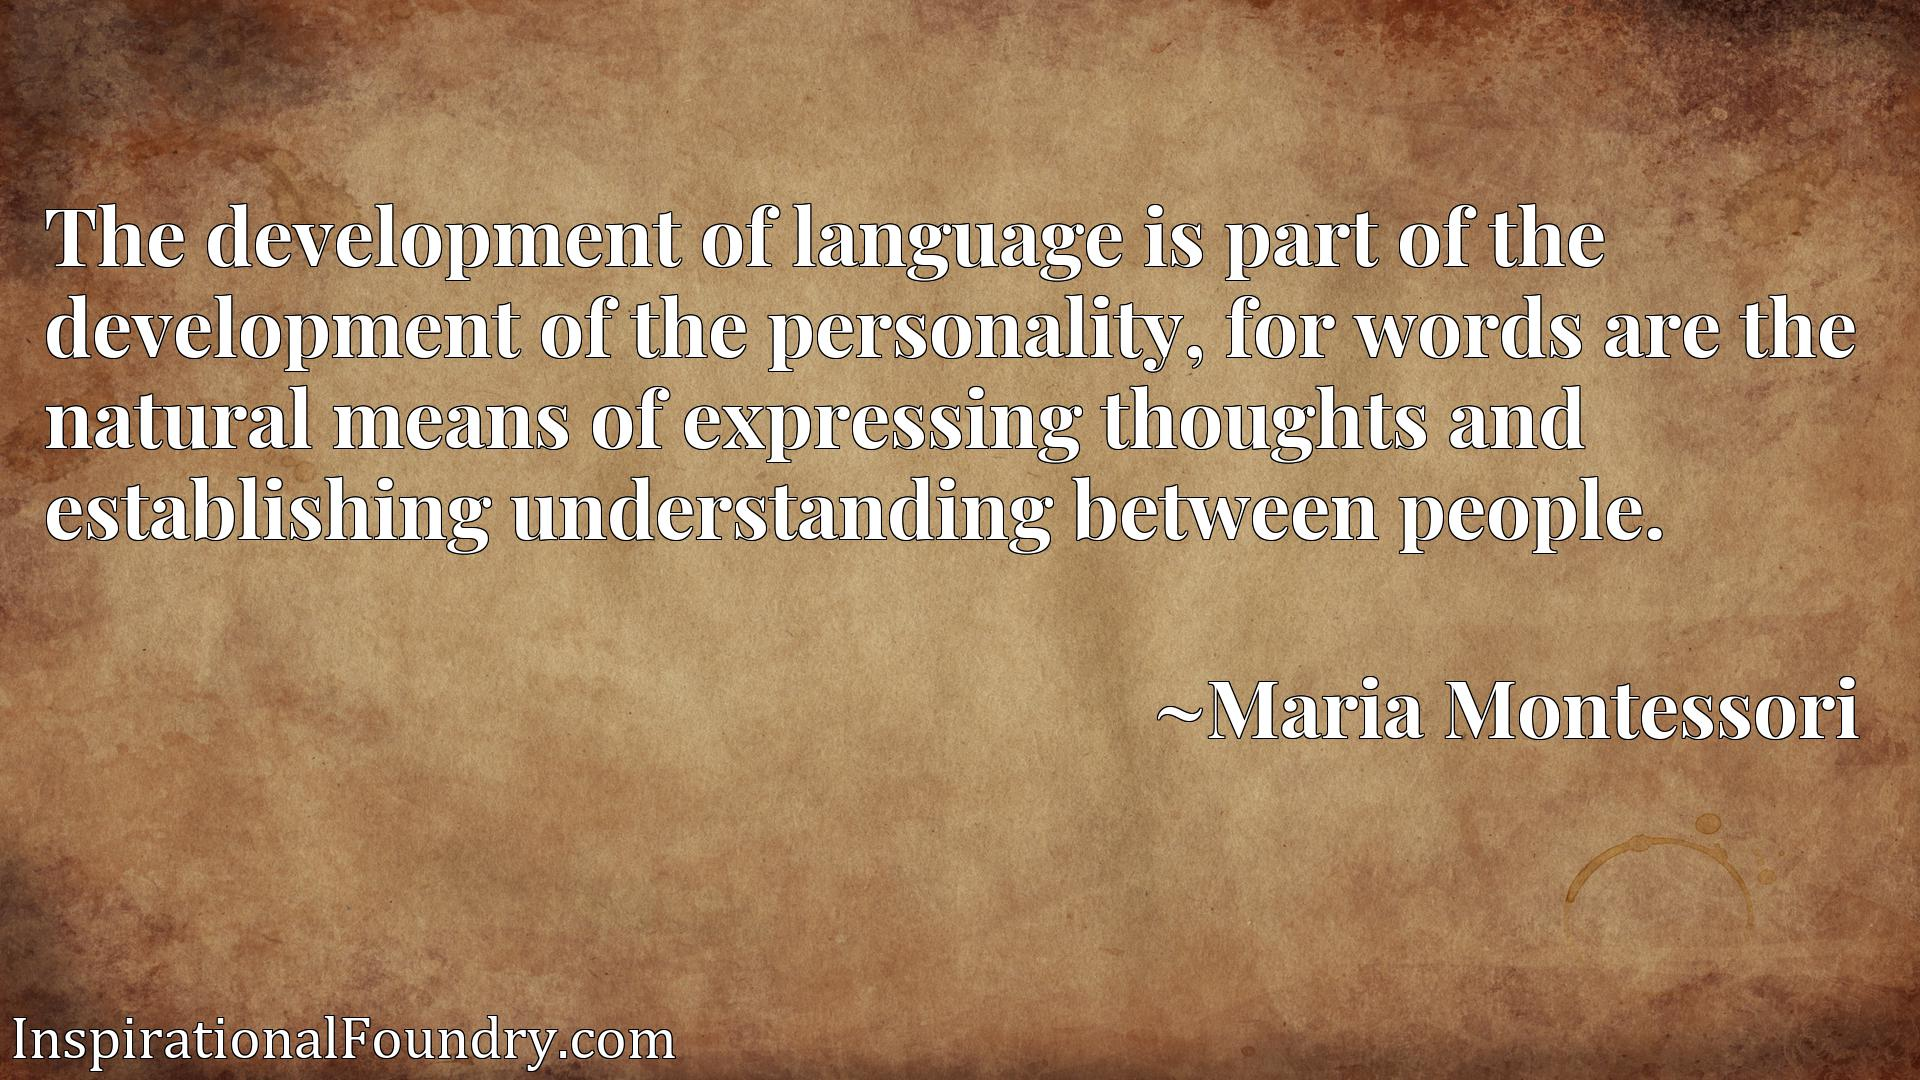 The development of language is part of the development of the personality, for words are the natural means of expressing thoughts and establishing understanding between people.